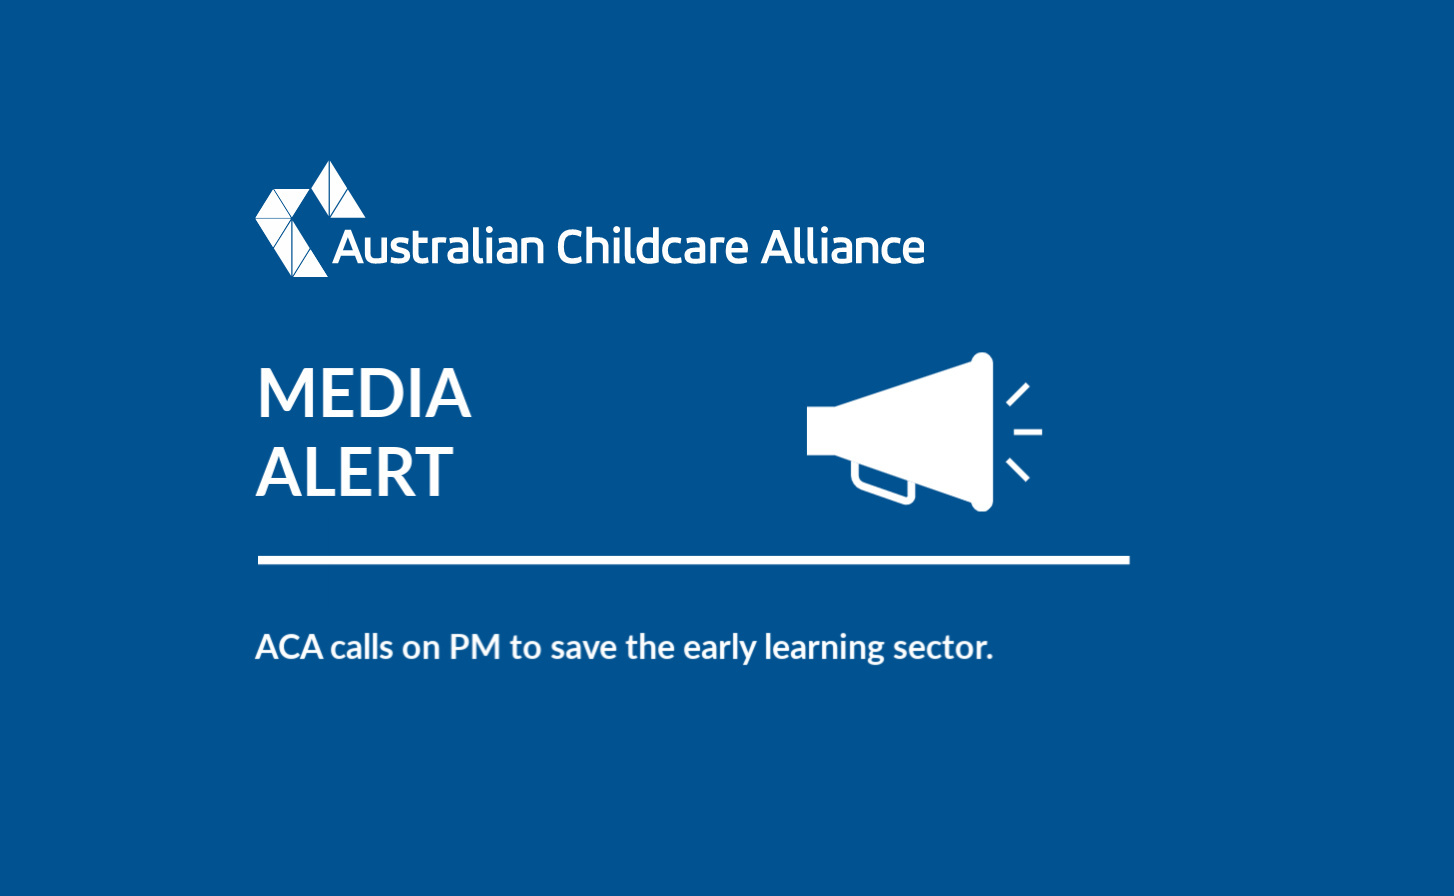 ACA calls on PM to save early learning sector